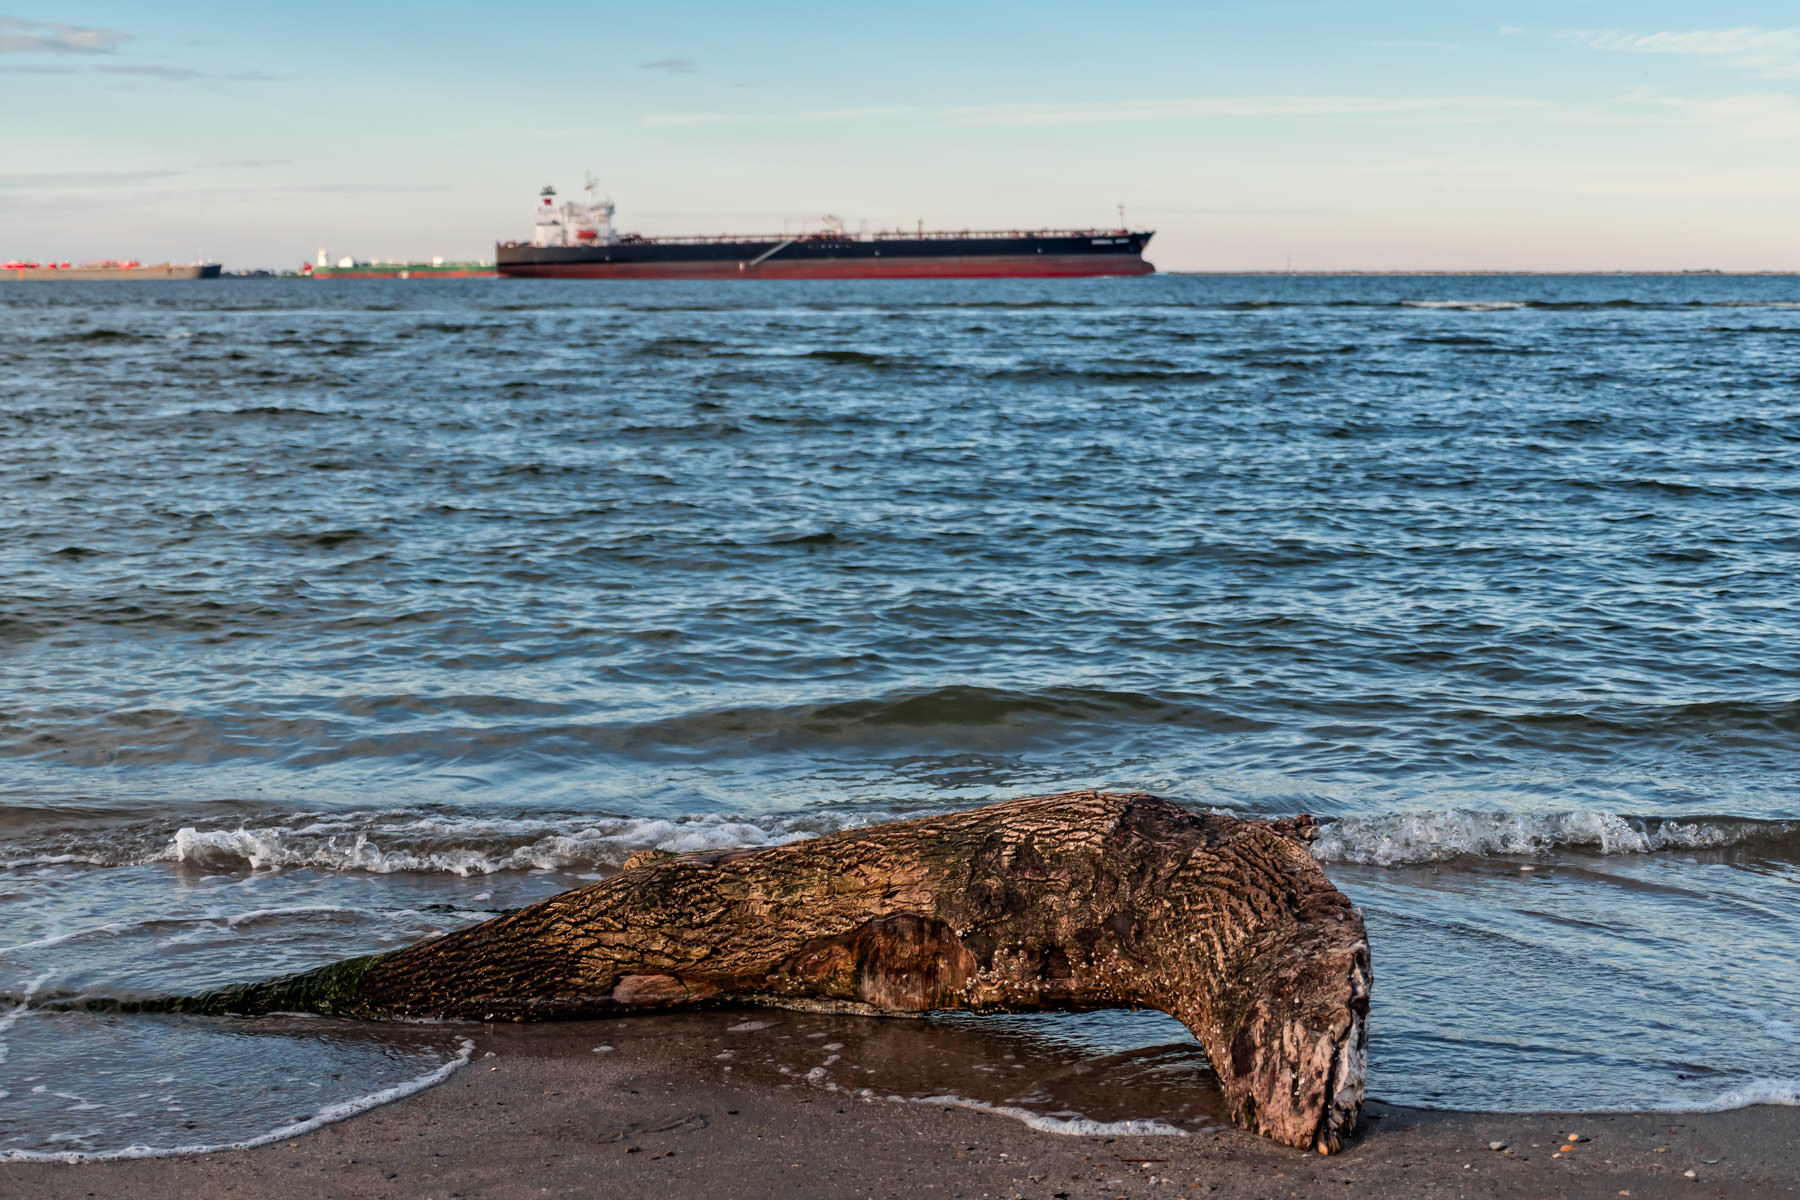 Waves lap against a piece of driftwood washed ashore a beach on the north end of Galveston Island, Texas, as ships transit Bolivar Roads in the background.